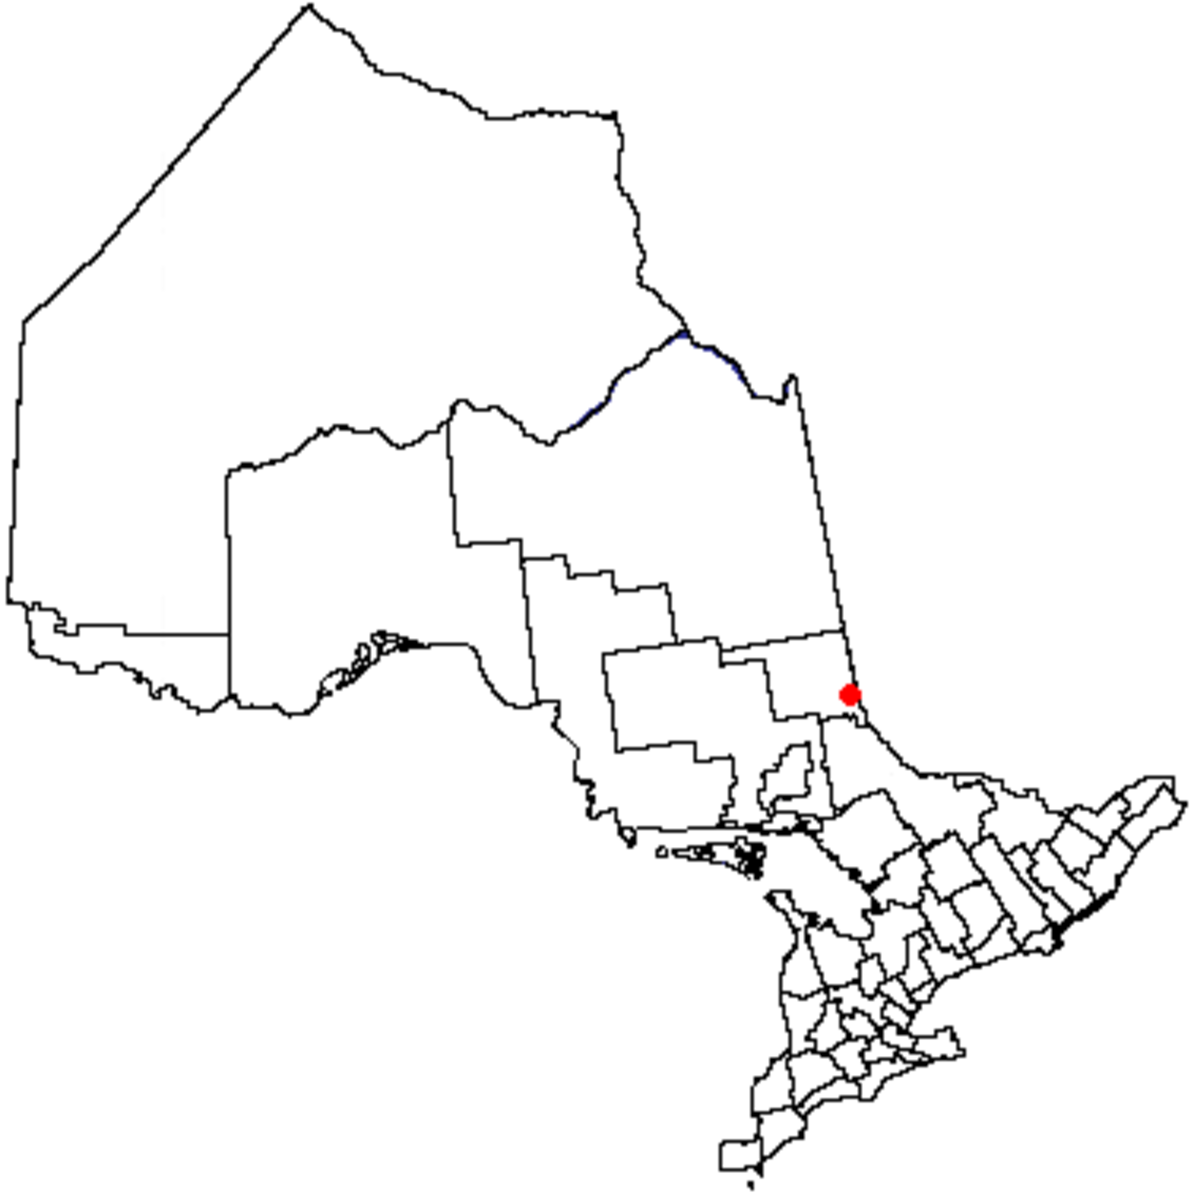 Map location of the City of Temiskaming Shores, Ontario